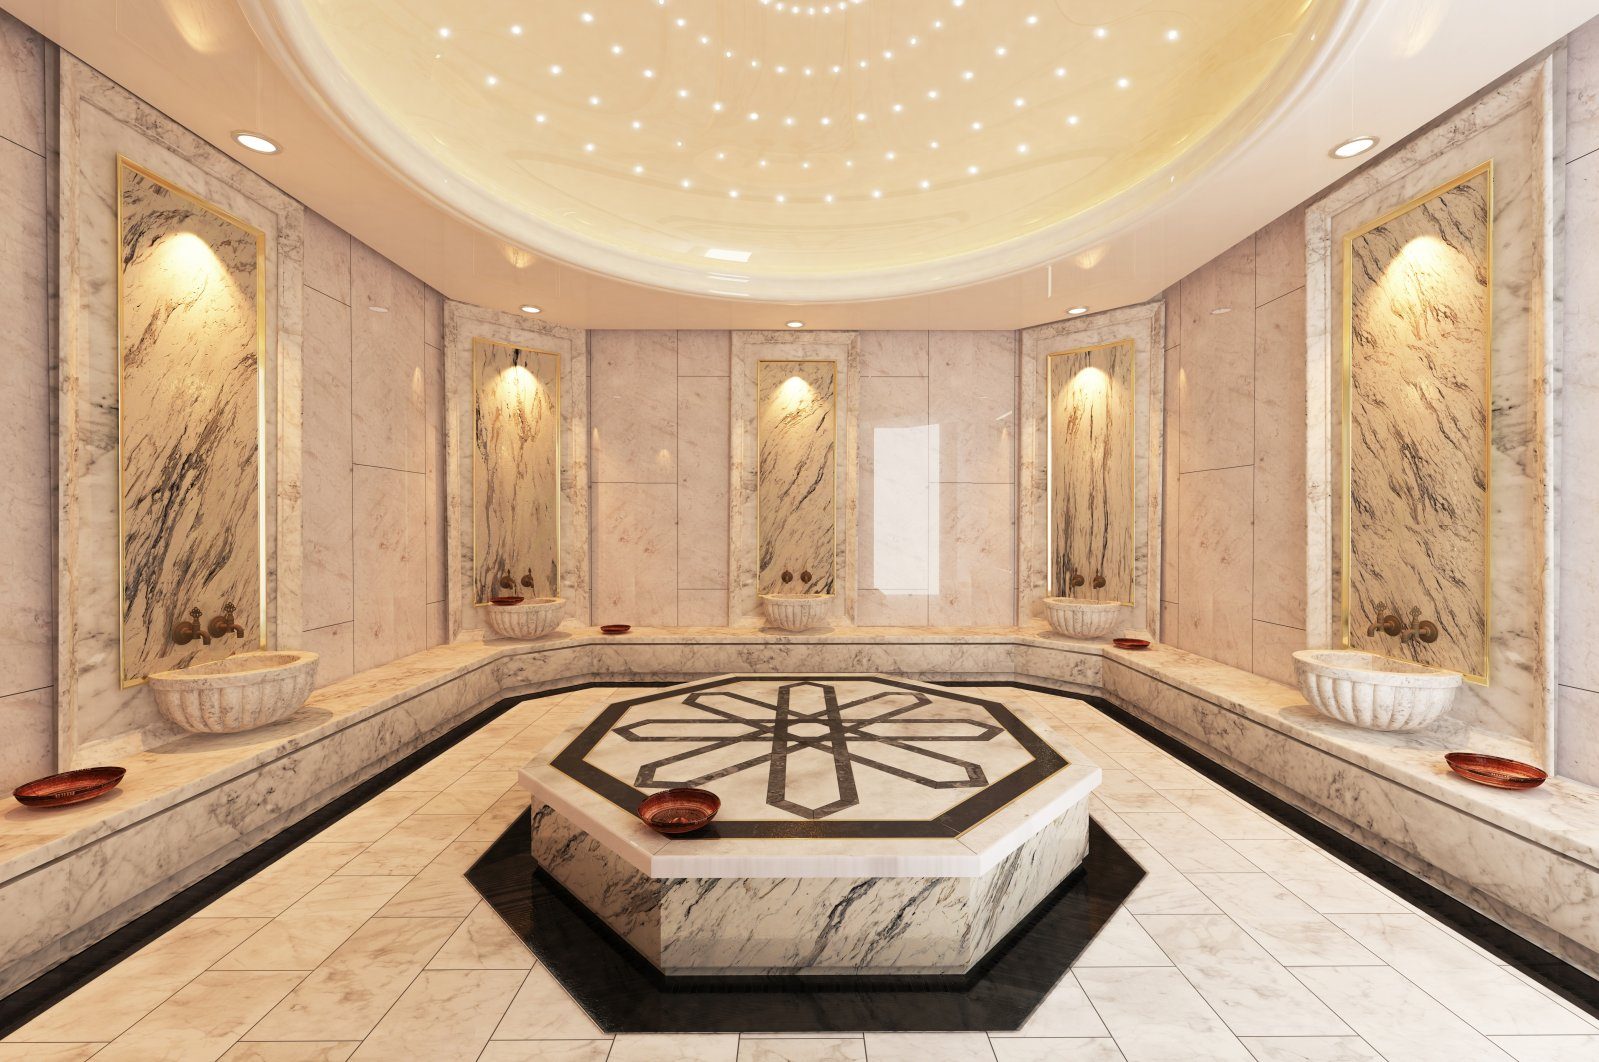 Turkish hammams are centers for people to socialize in addition to being places where people took baths. (Shutterstock Photo)